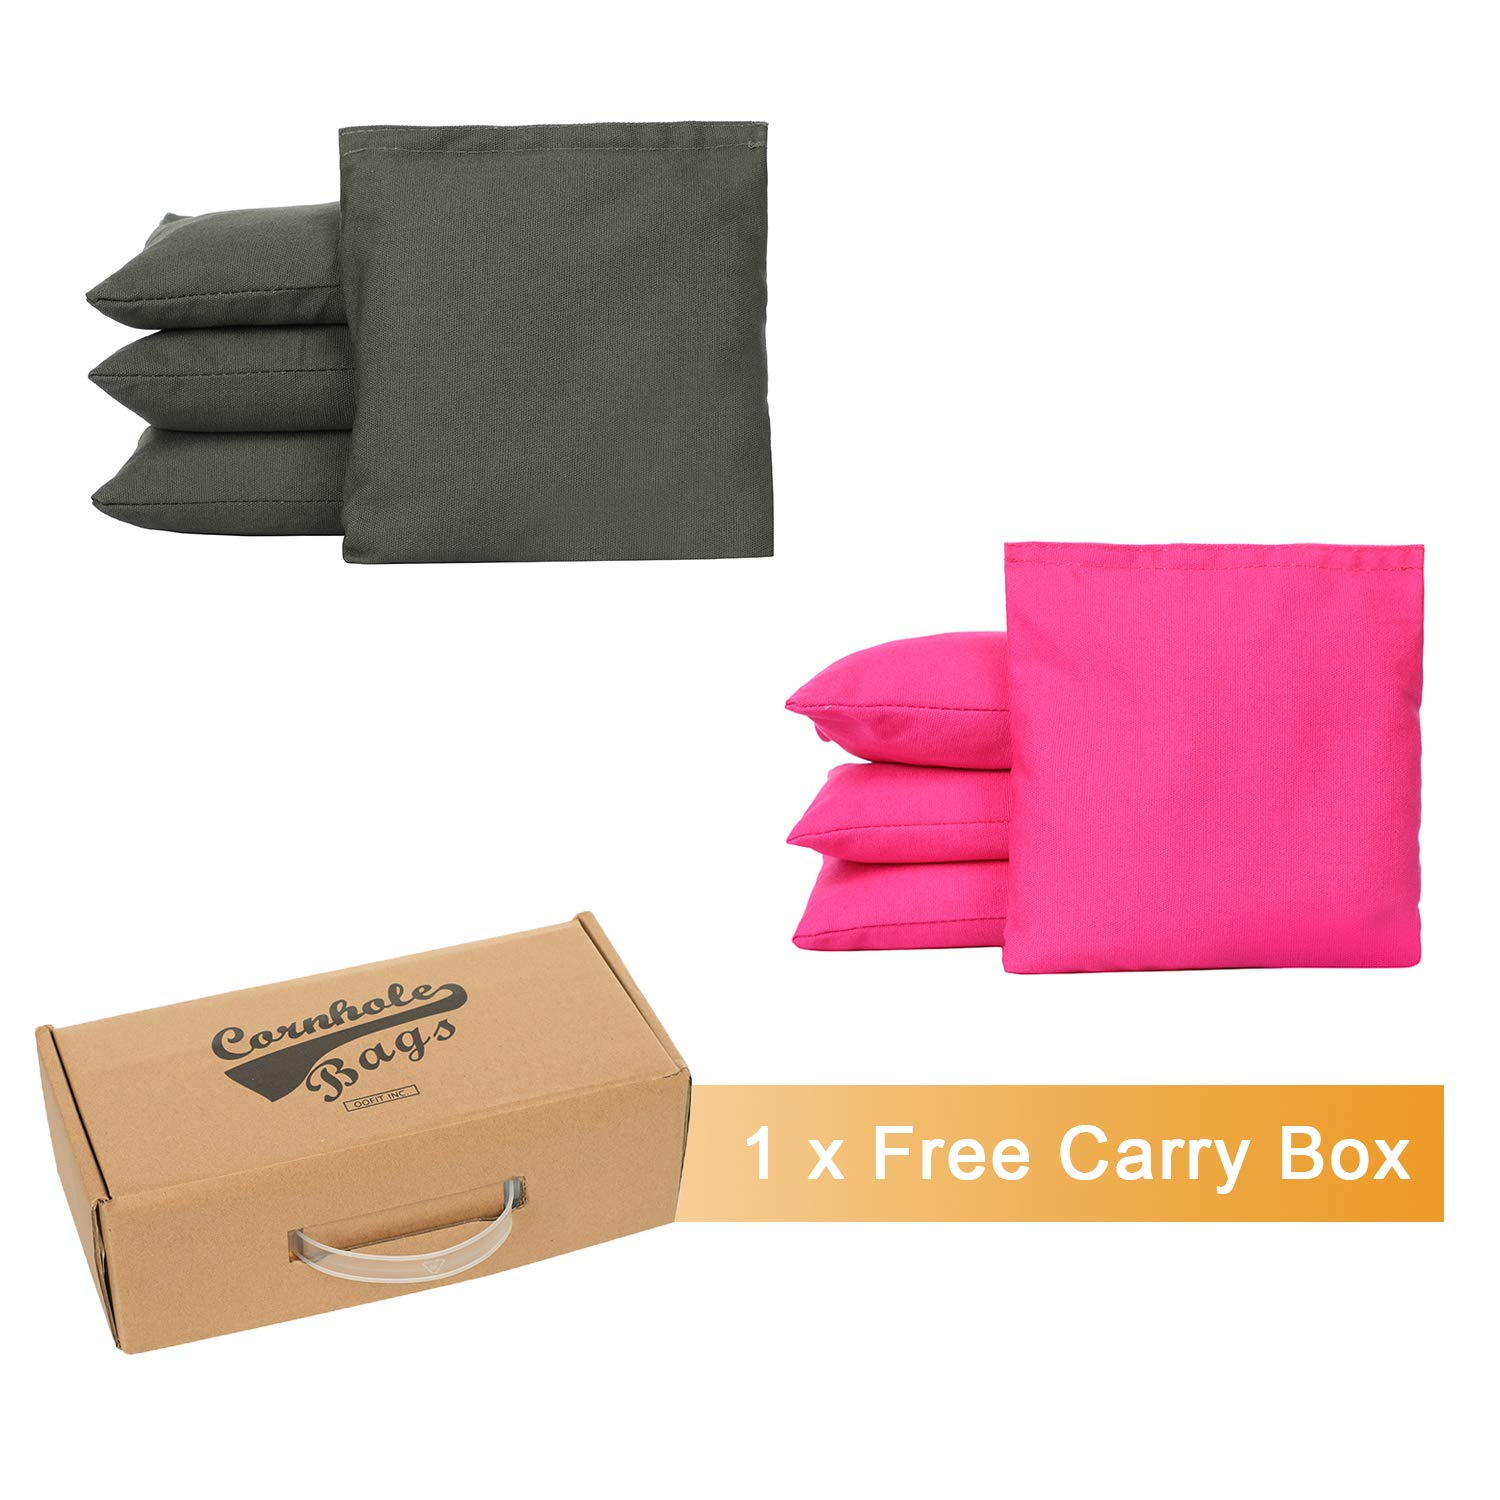 OOFIT Cornhole Bean Bags Set of 8 Weather Resistant for Tossing Corn Hole Game with Carrying Box (Hot Pink, Dark Grey)